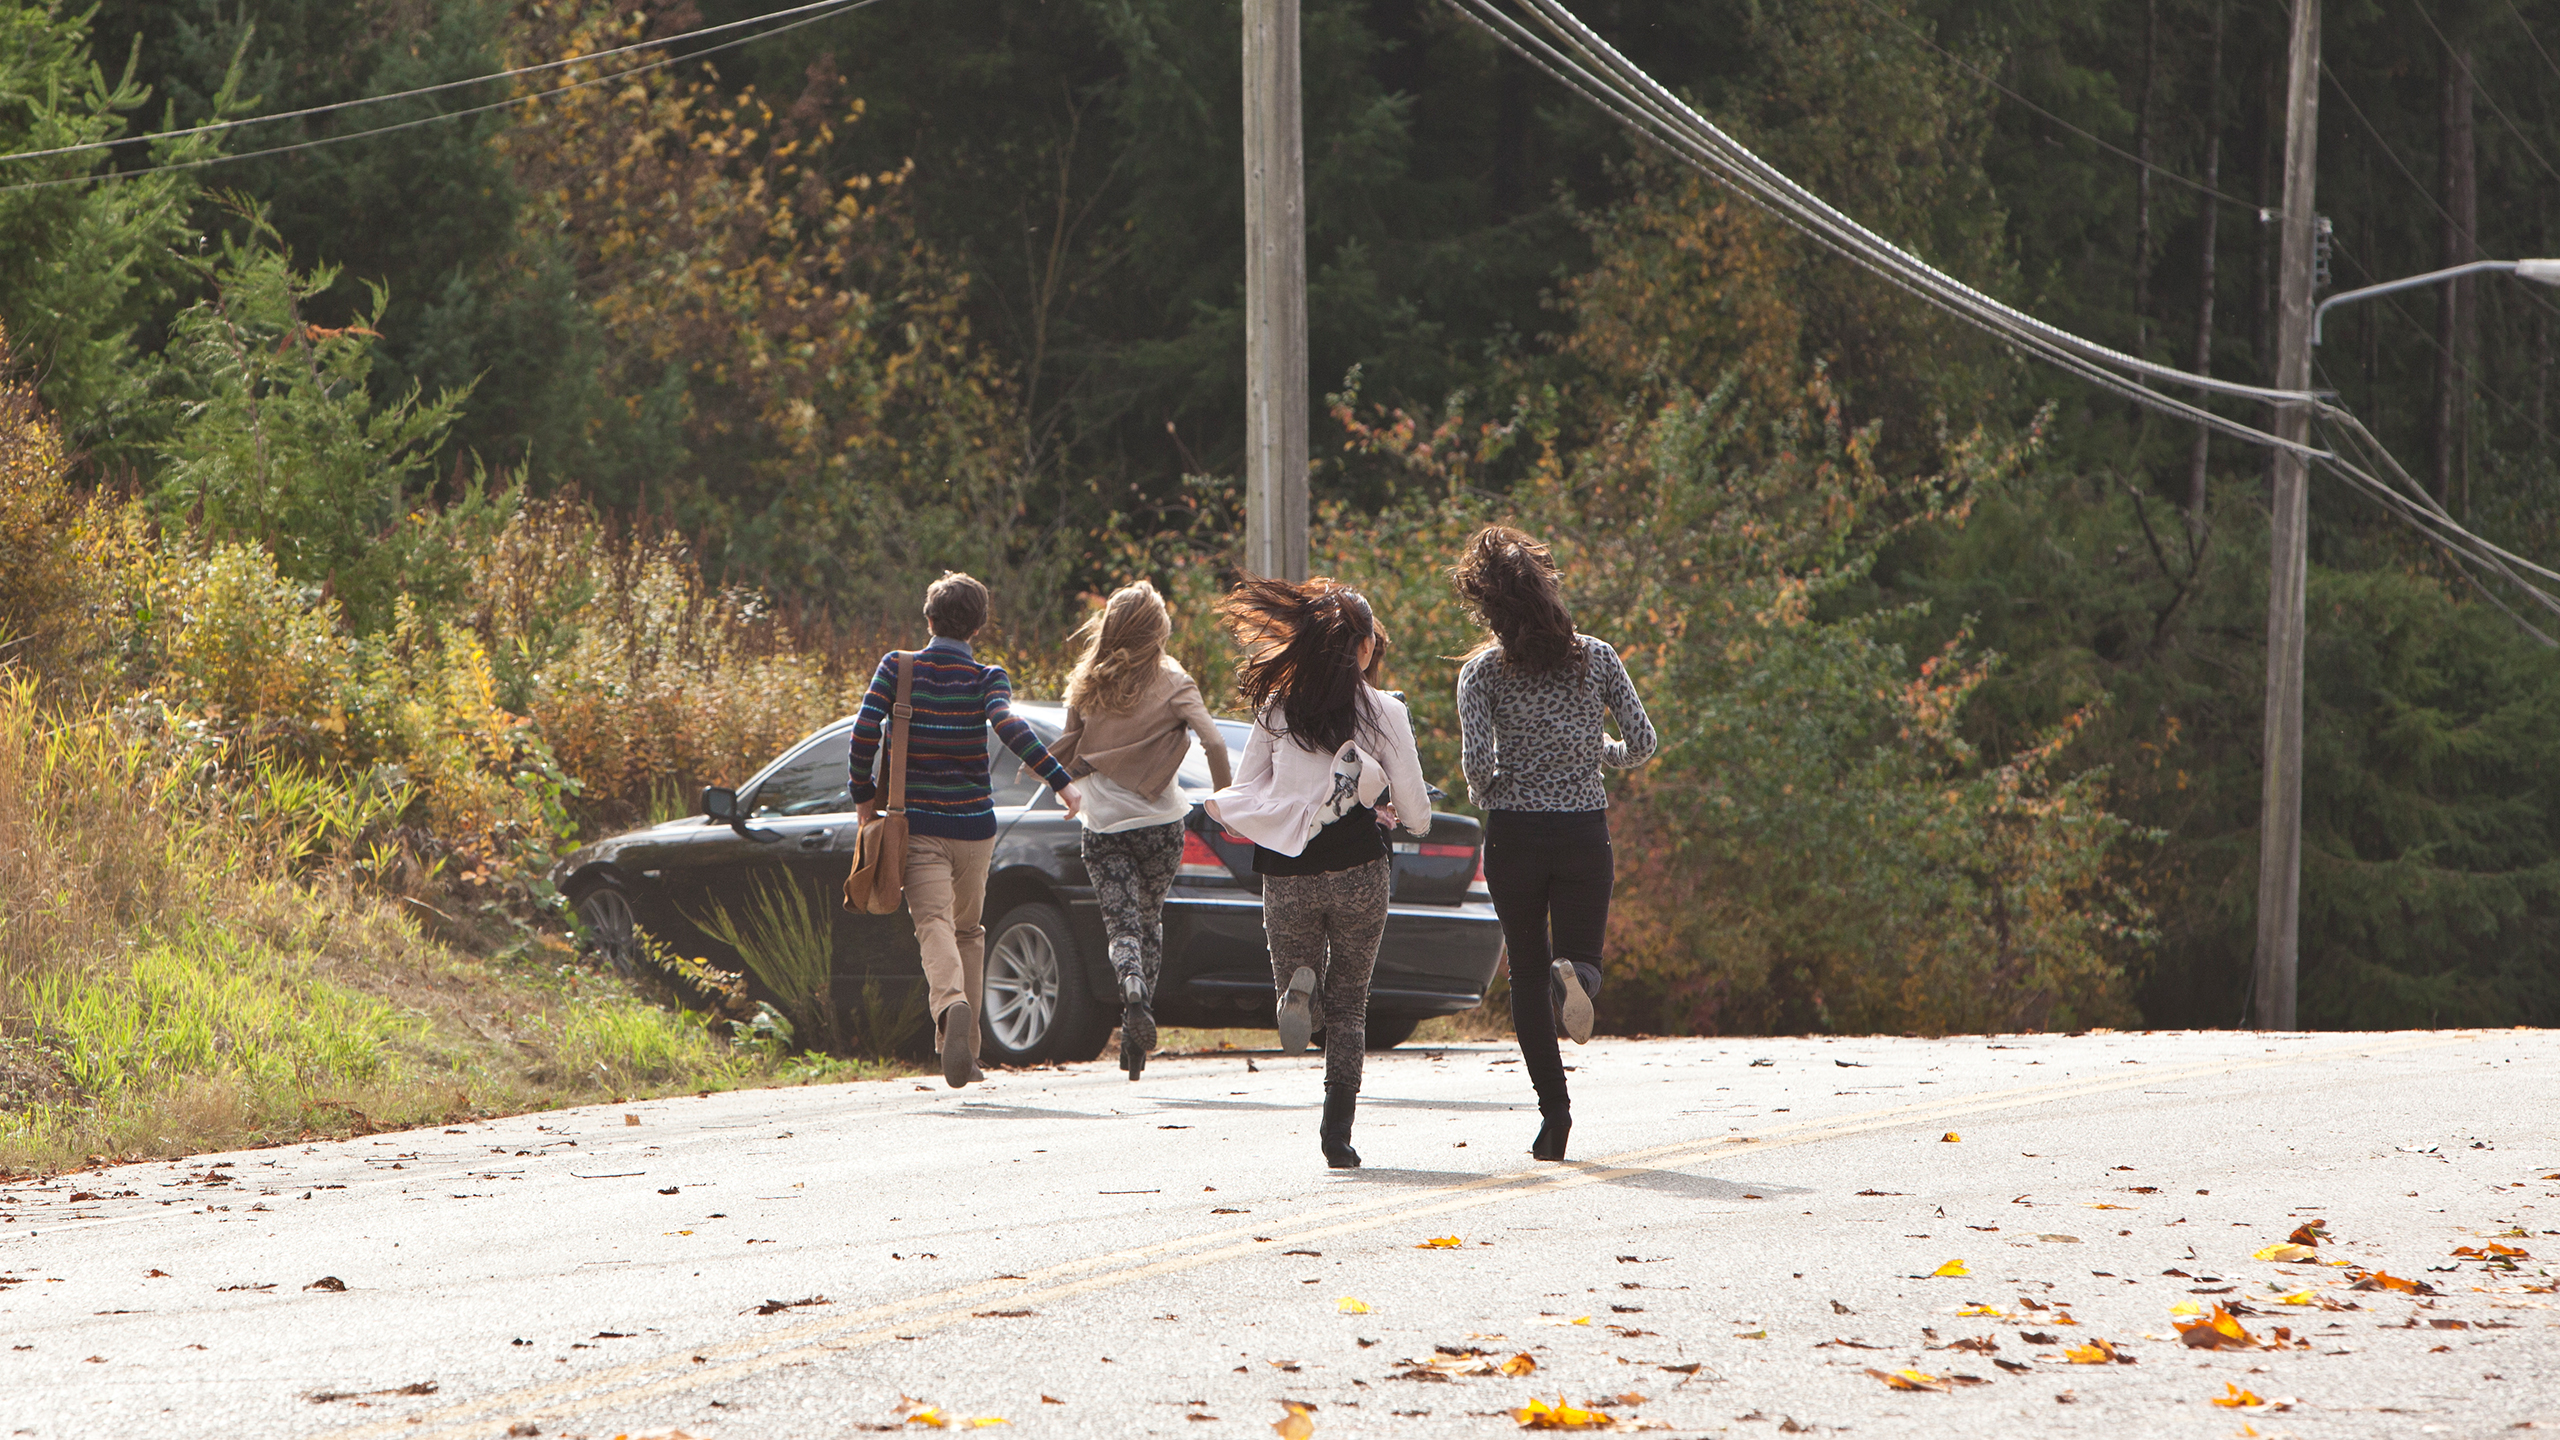 File:03-norman-bradley-and-girls-run-to-crashed-car.jpg